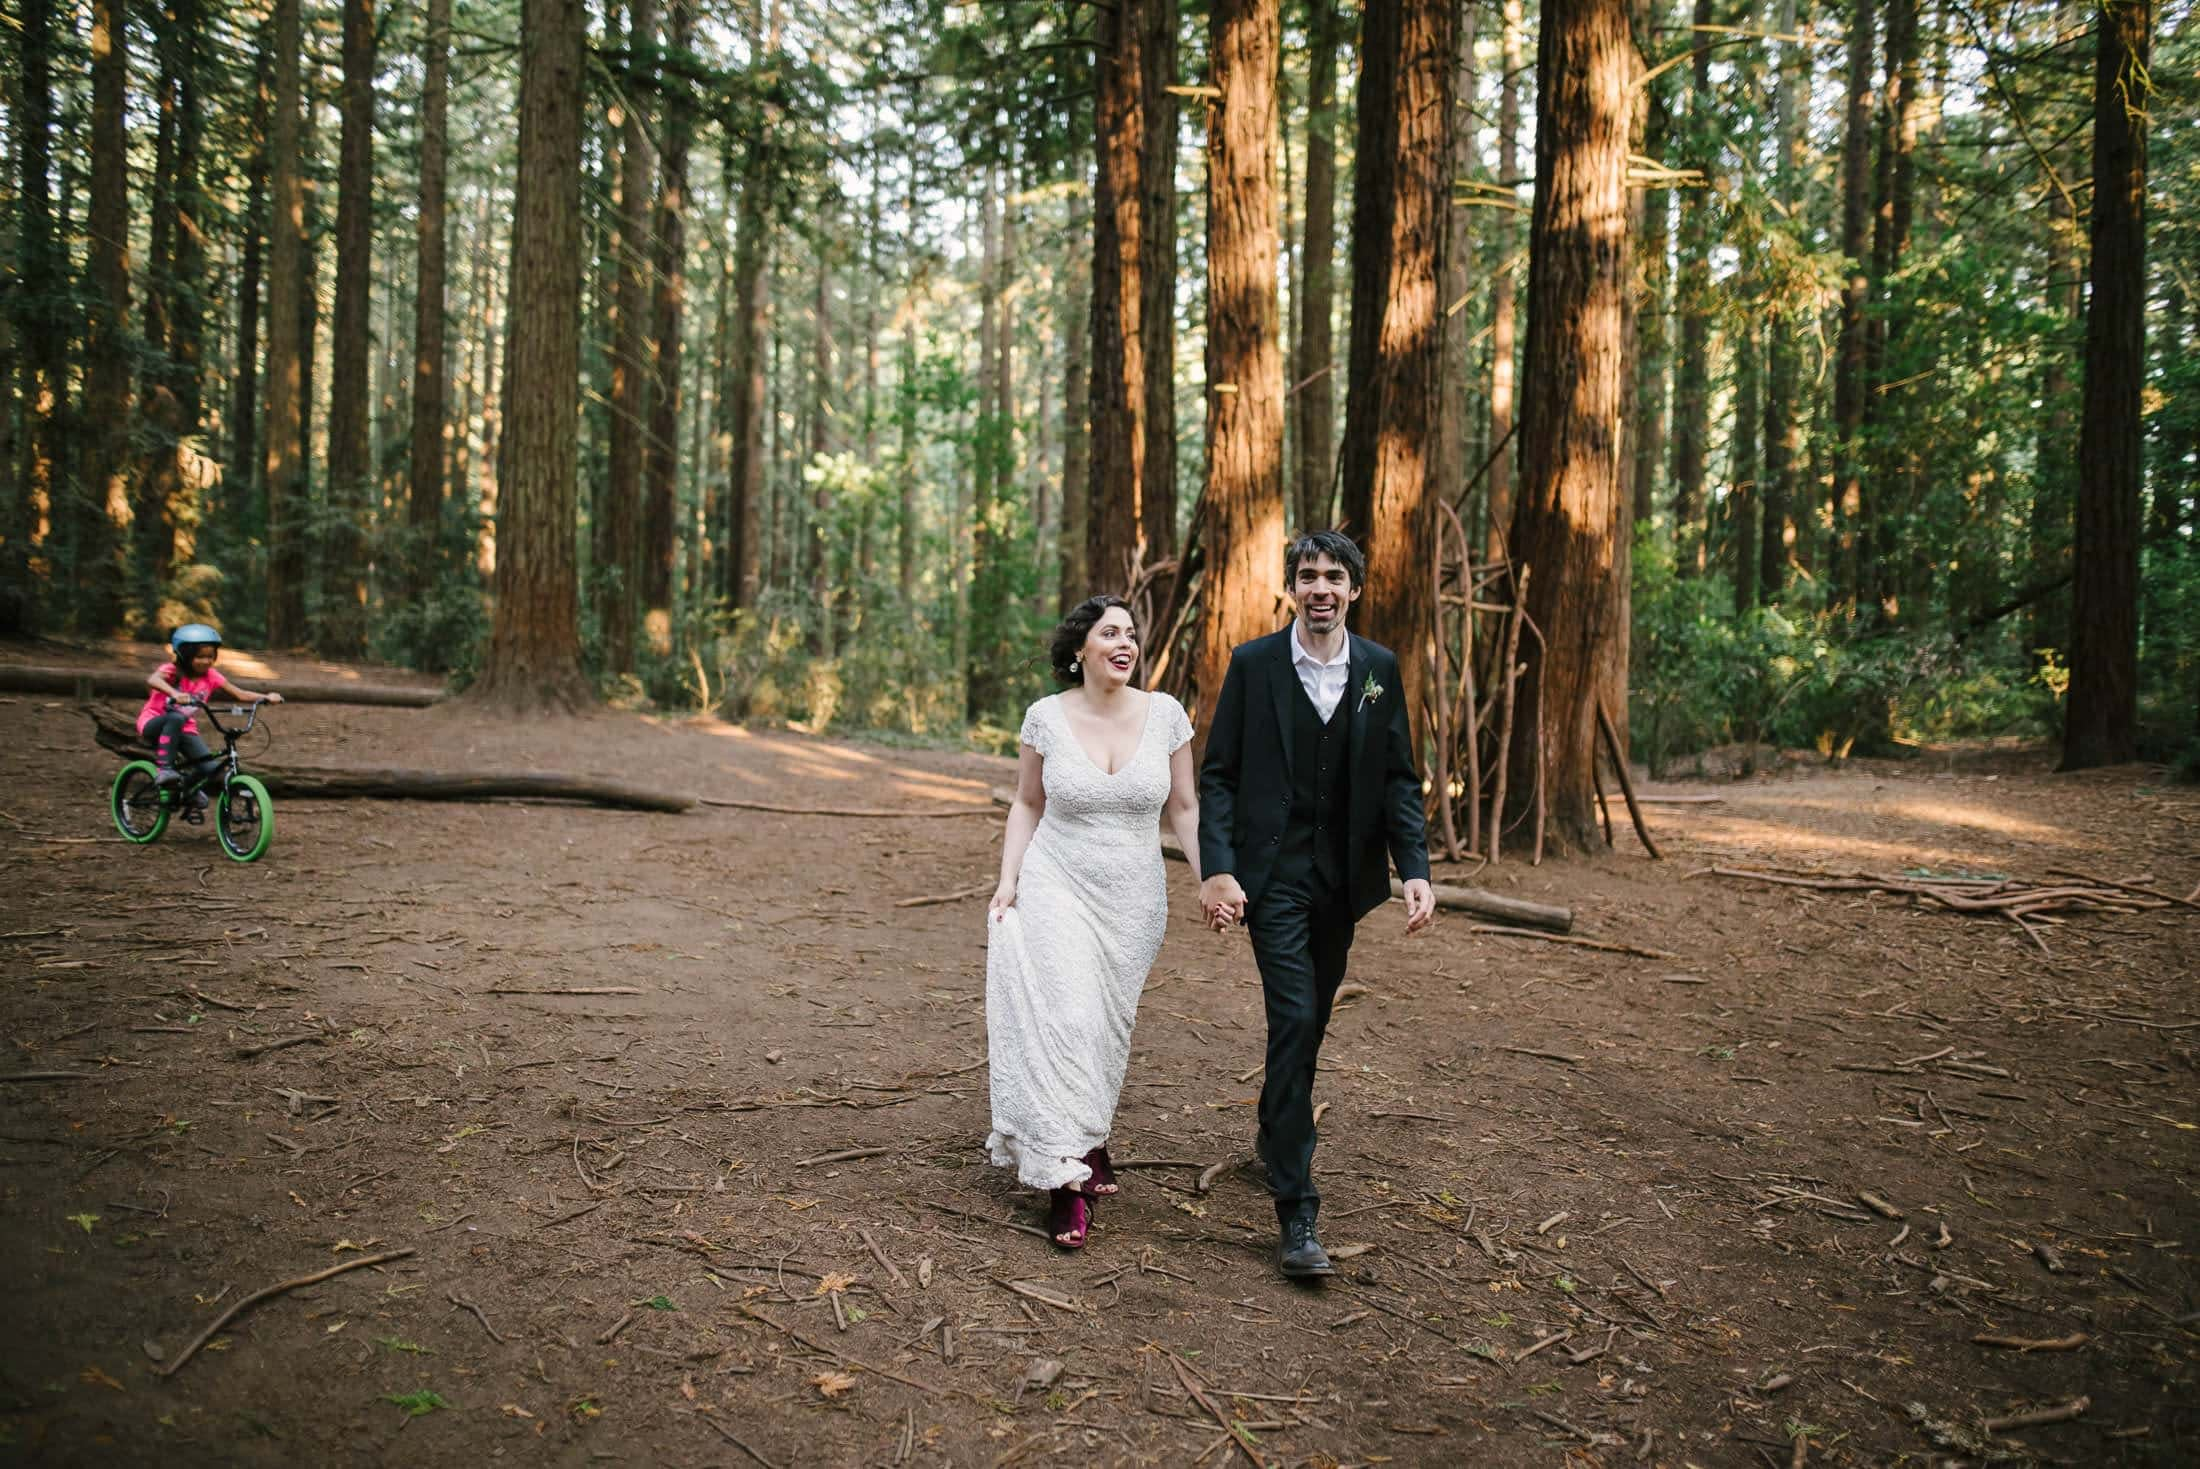 Big Trees Trail Wedding Portraits across the street from Robert's Regional Park